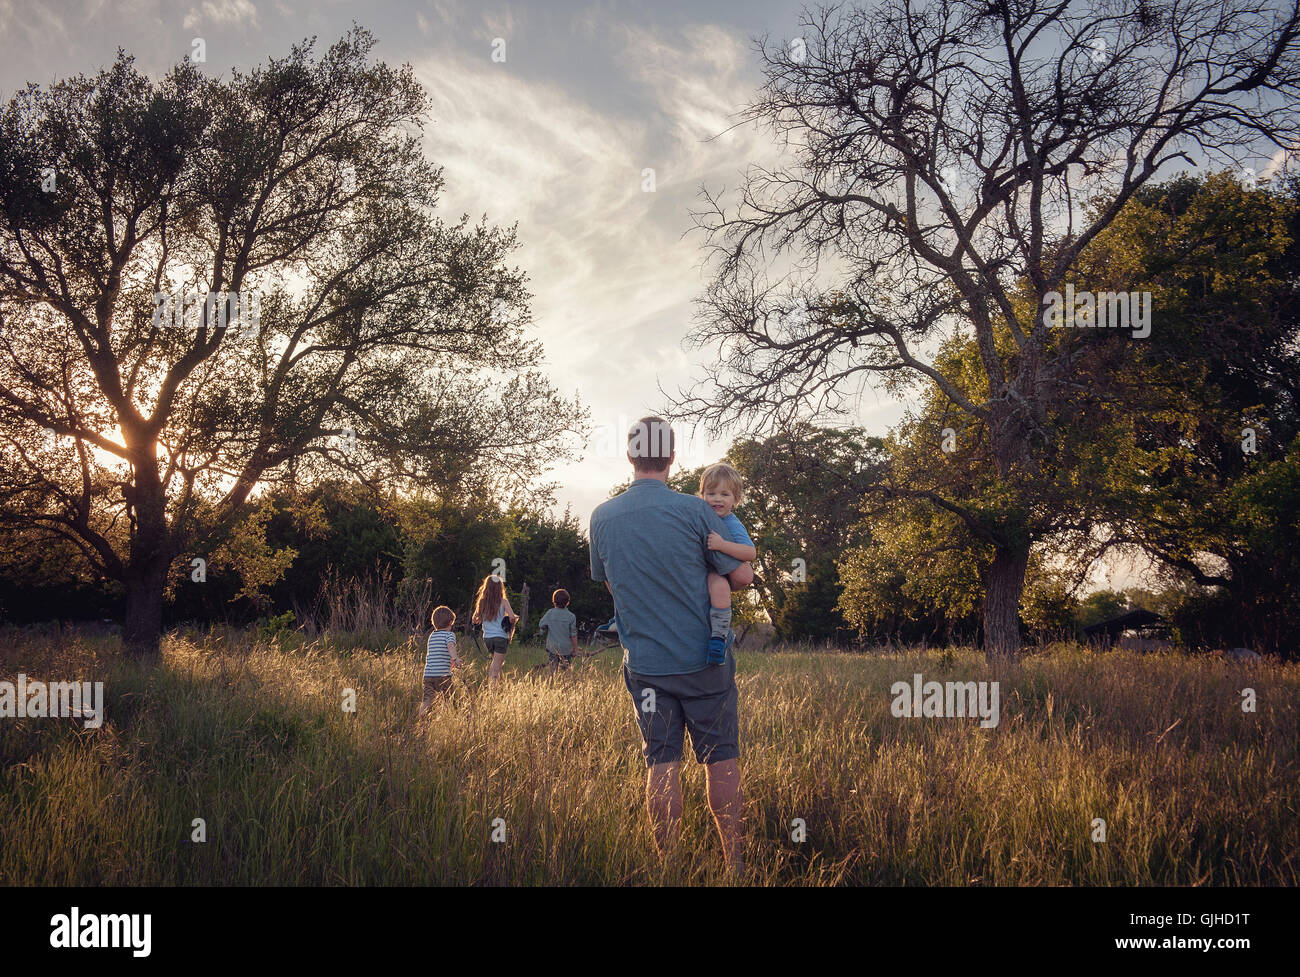 Father and four children walking in rural landscape at dusk, Texas, America, USA - Stock Image